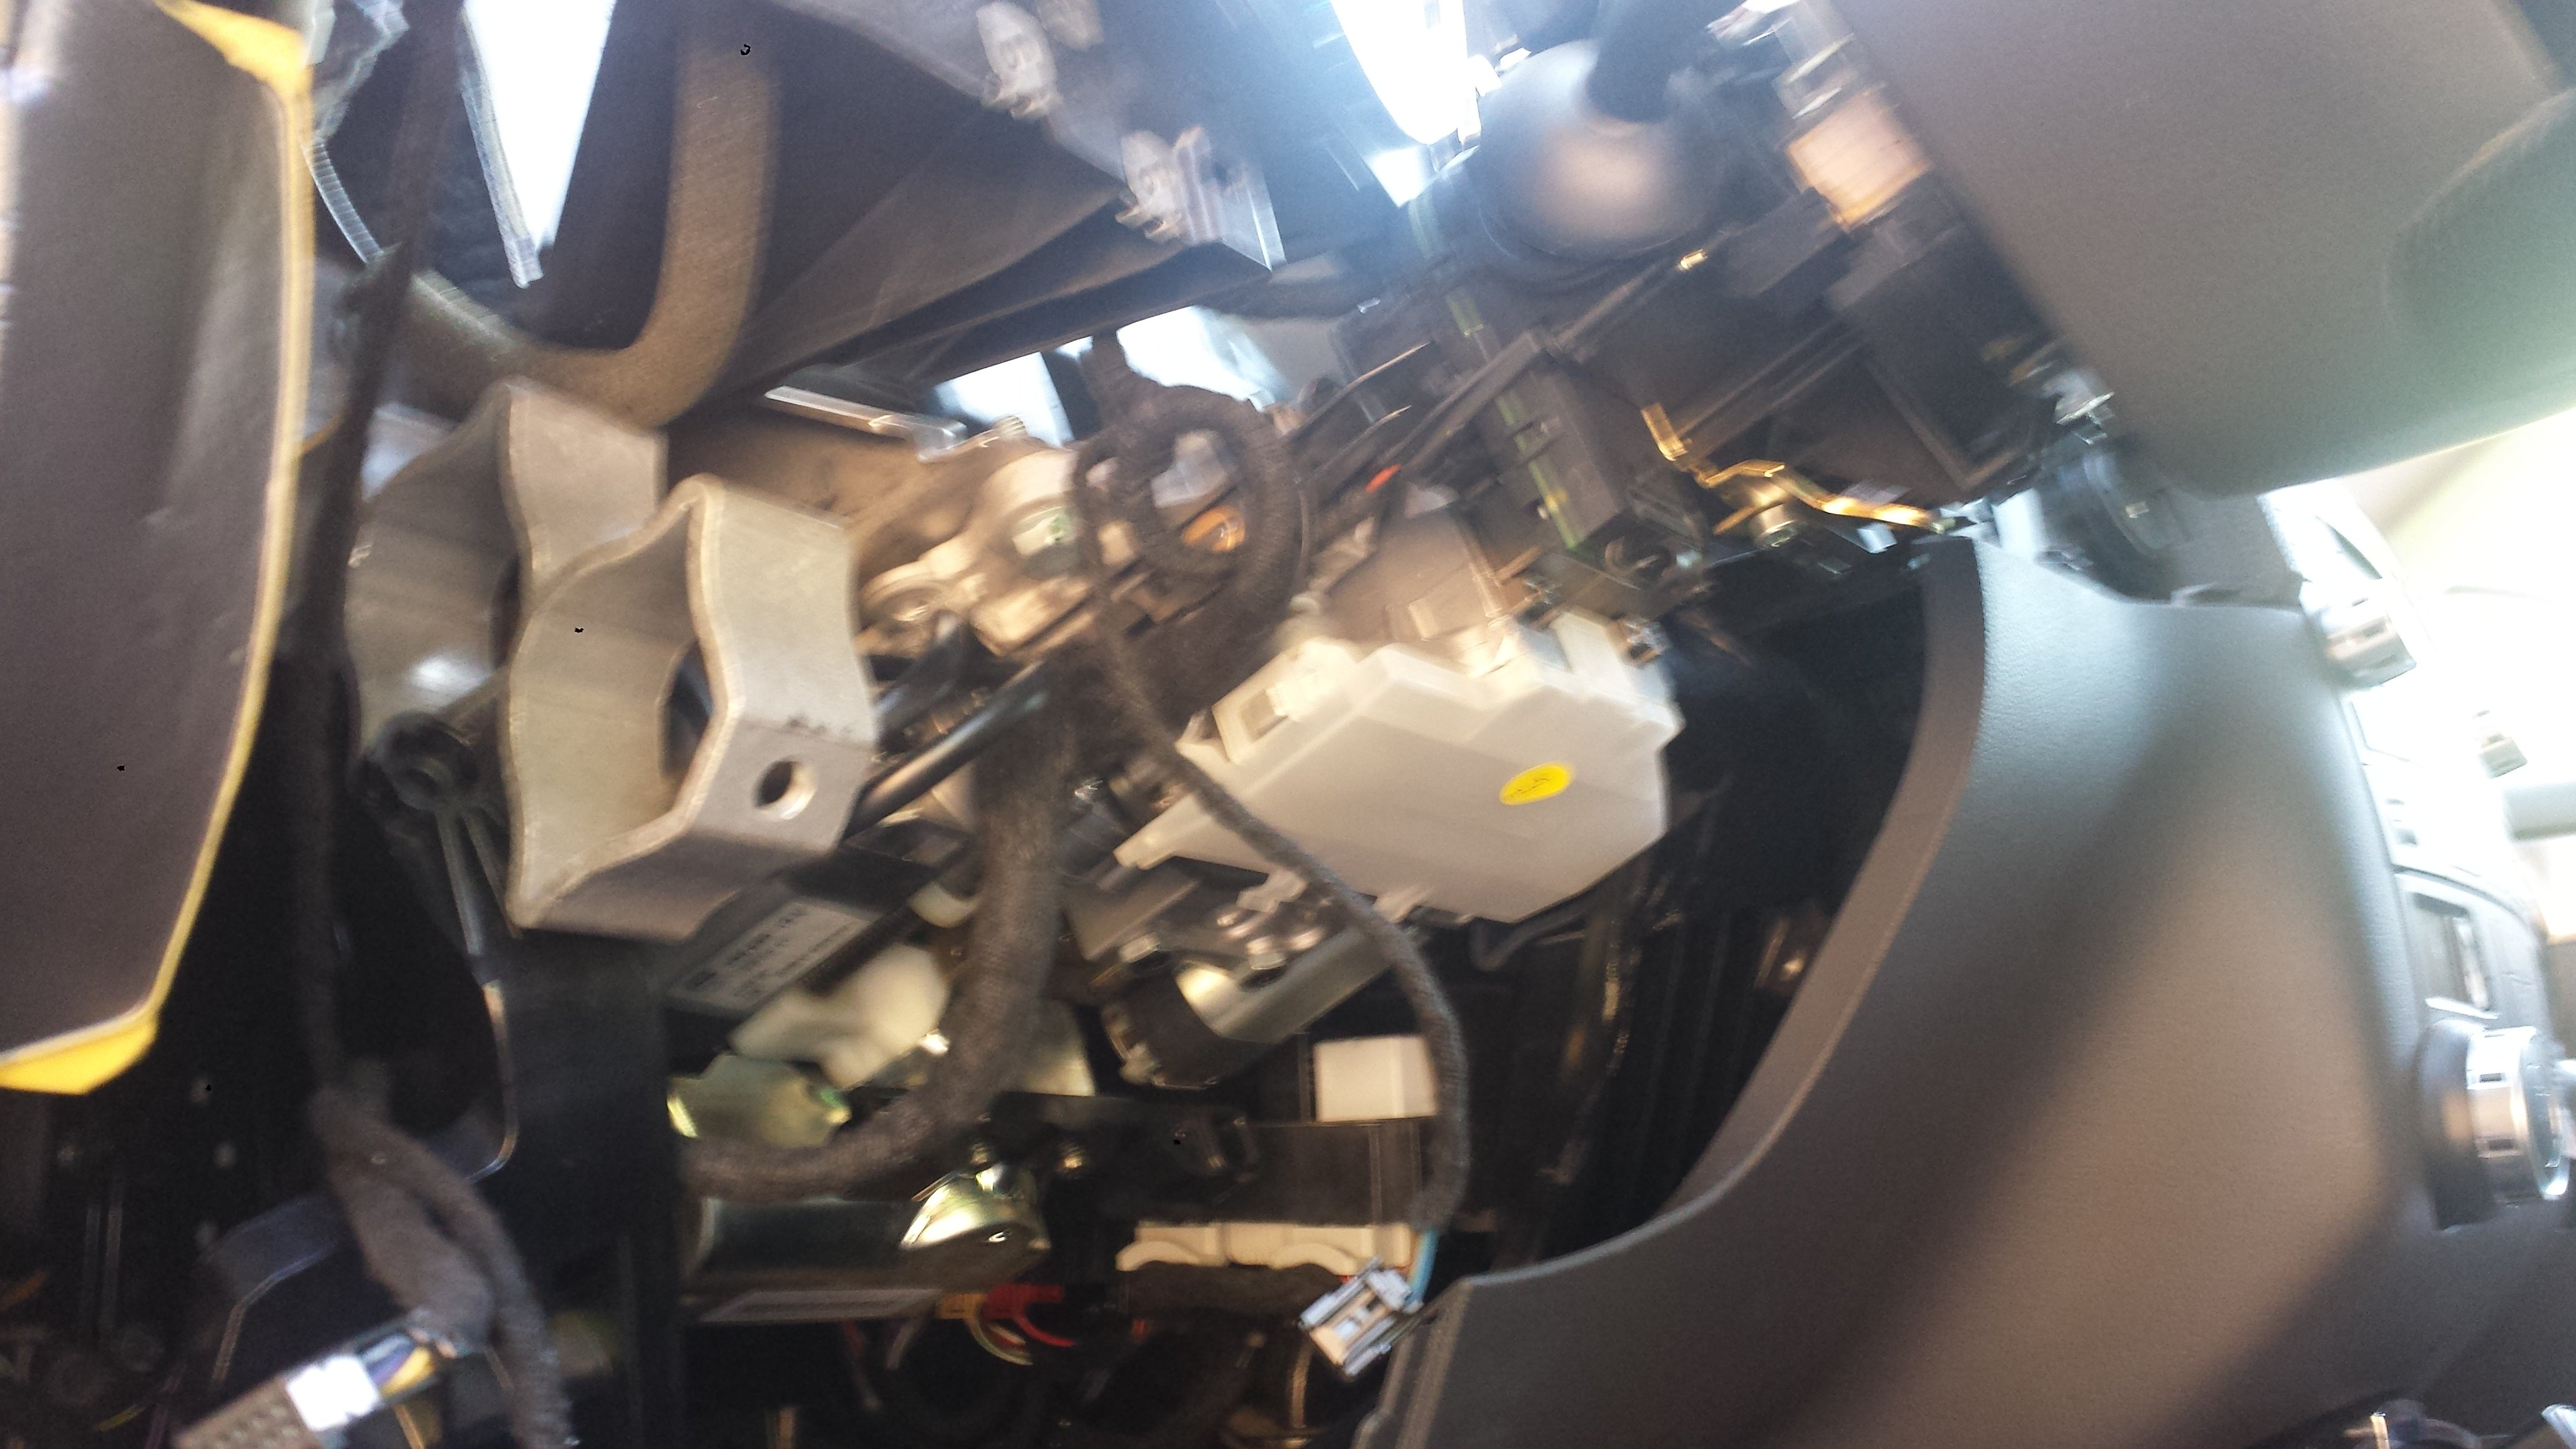 2004 Vw Touareg V8 Wiring Problem Am A Car Dealer Bought It To Fix No Communication Bus Problems For Mazda Vehicles 2015 04 26 154001 1430062744167